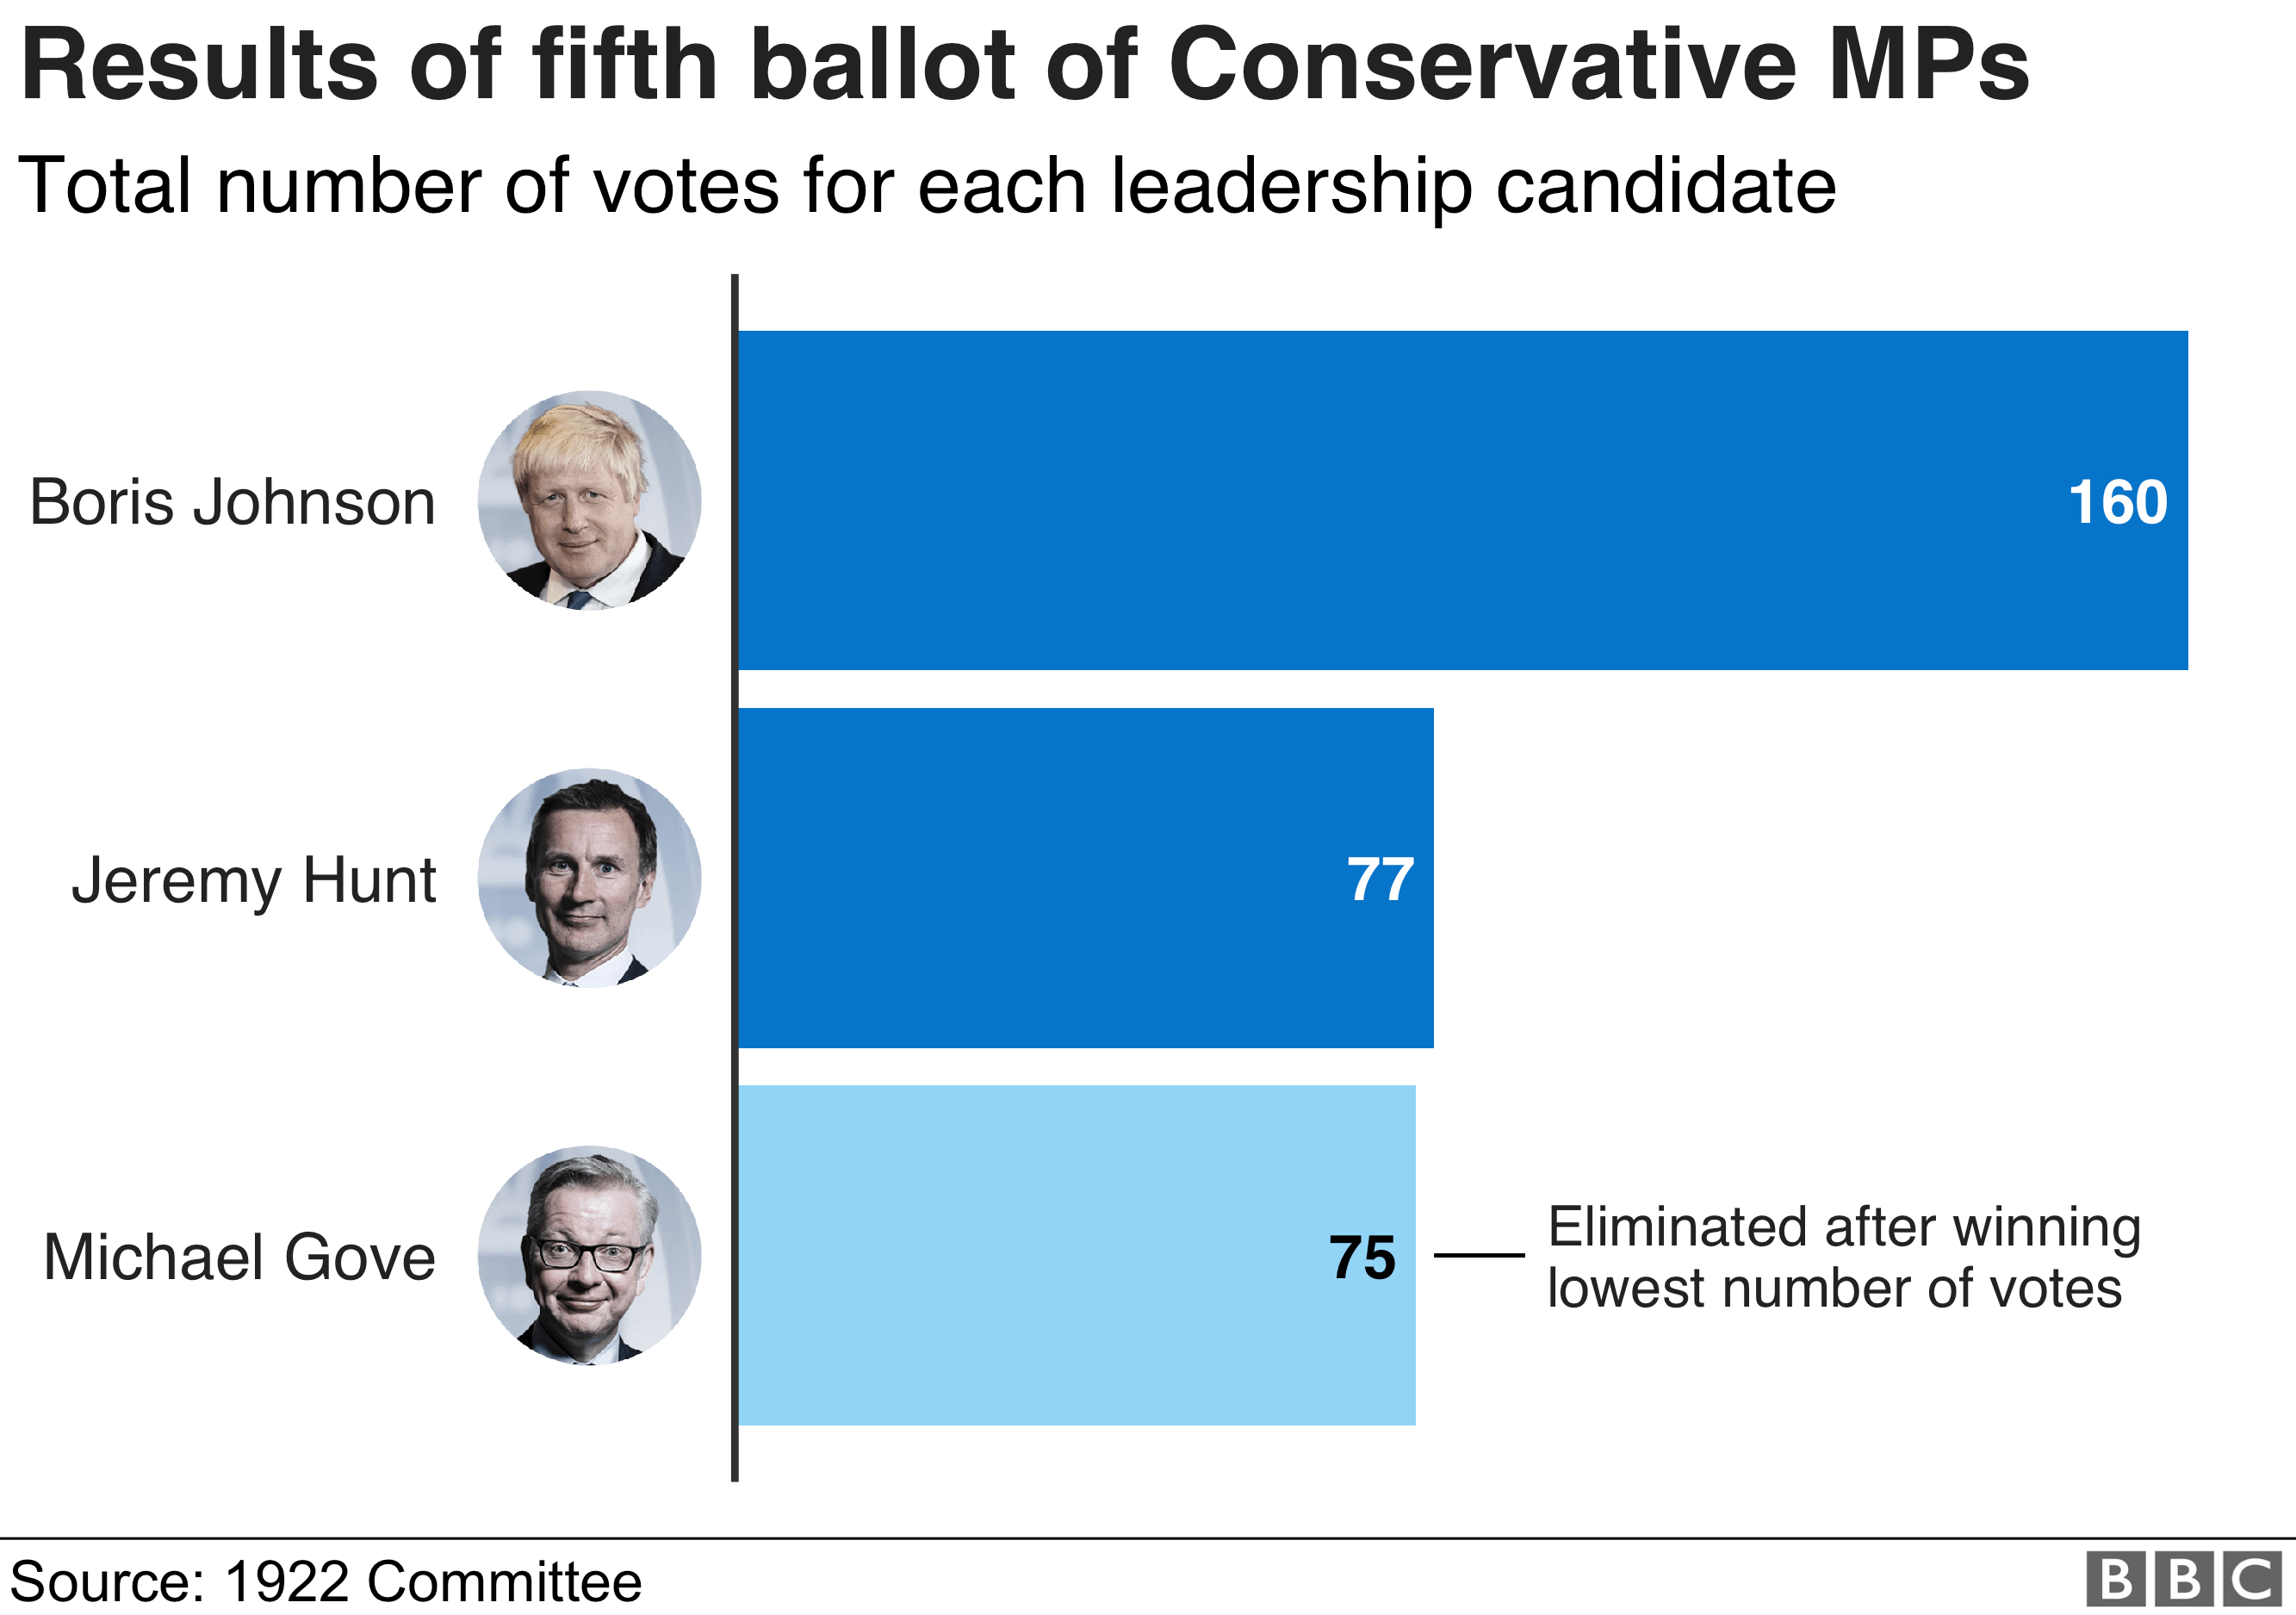 Results of fifth round of voting